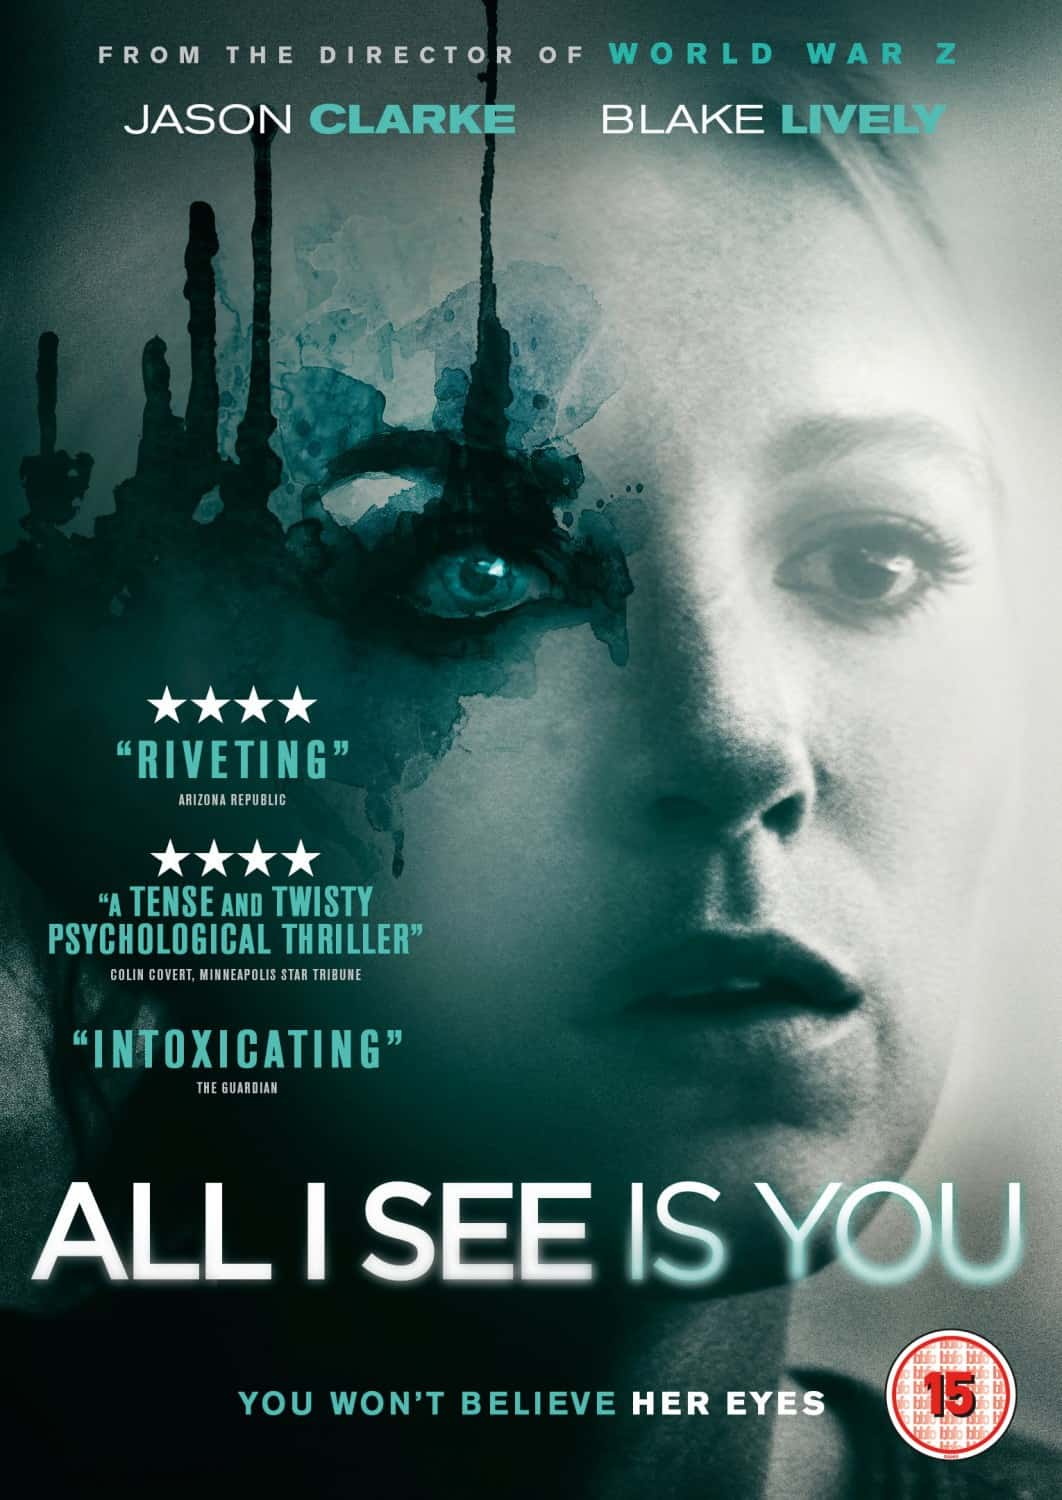 Film Review: ALL I SEE IS YOU (2016)